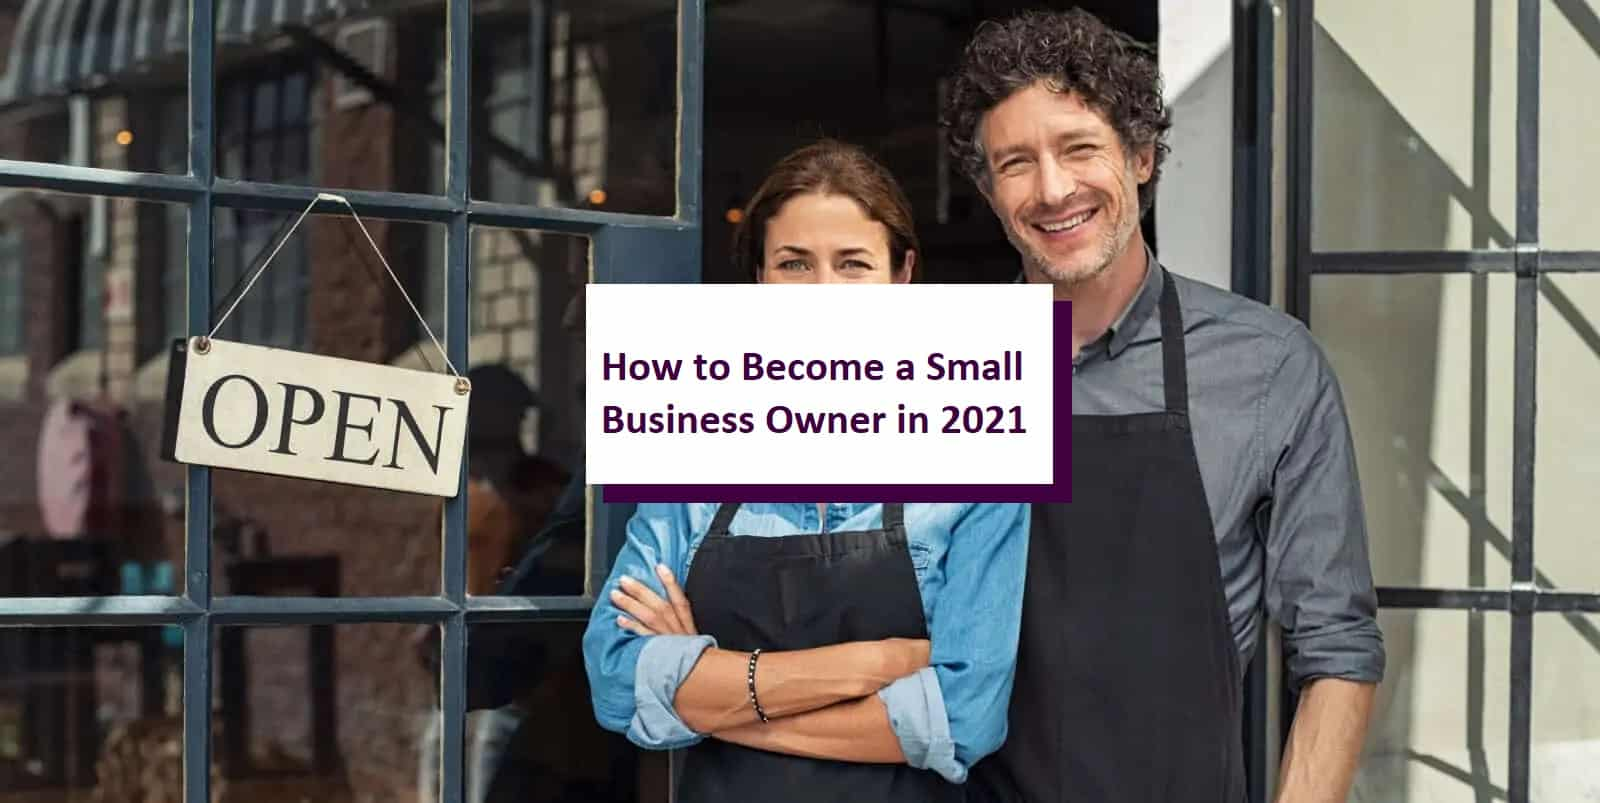 How to Become a Small Business Owner in 2021